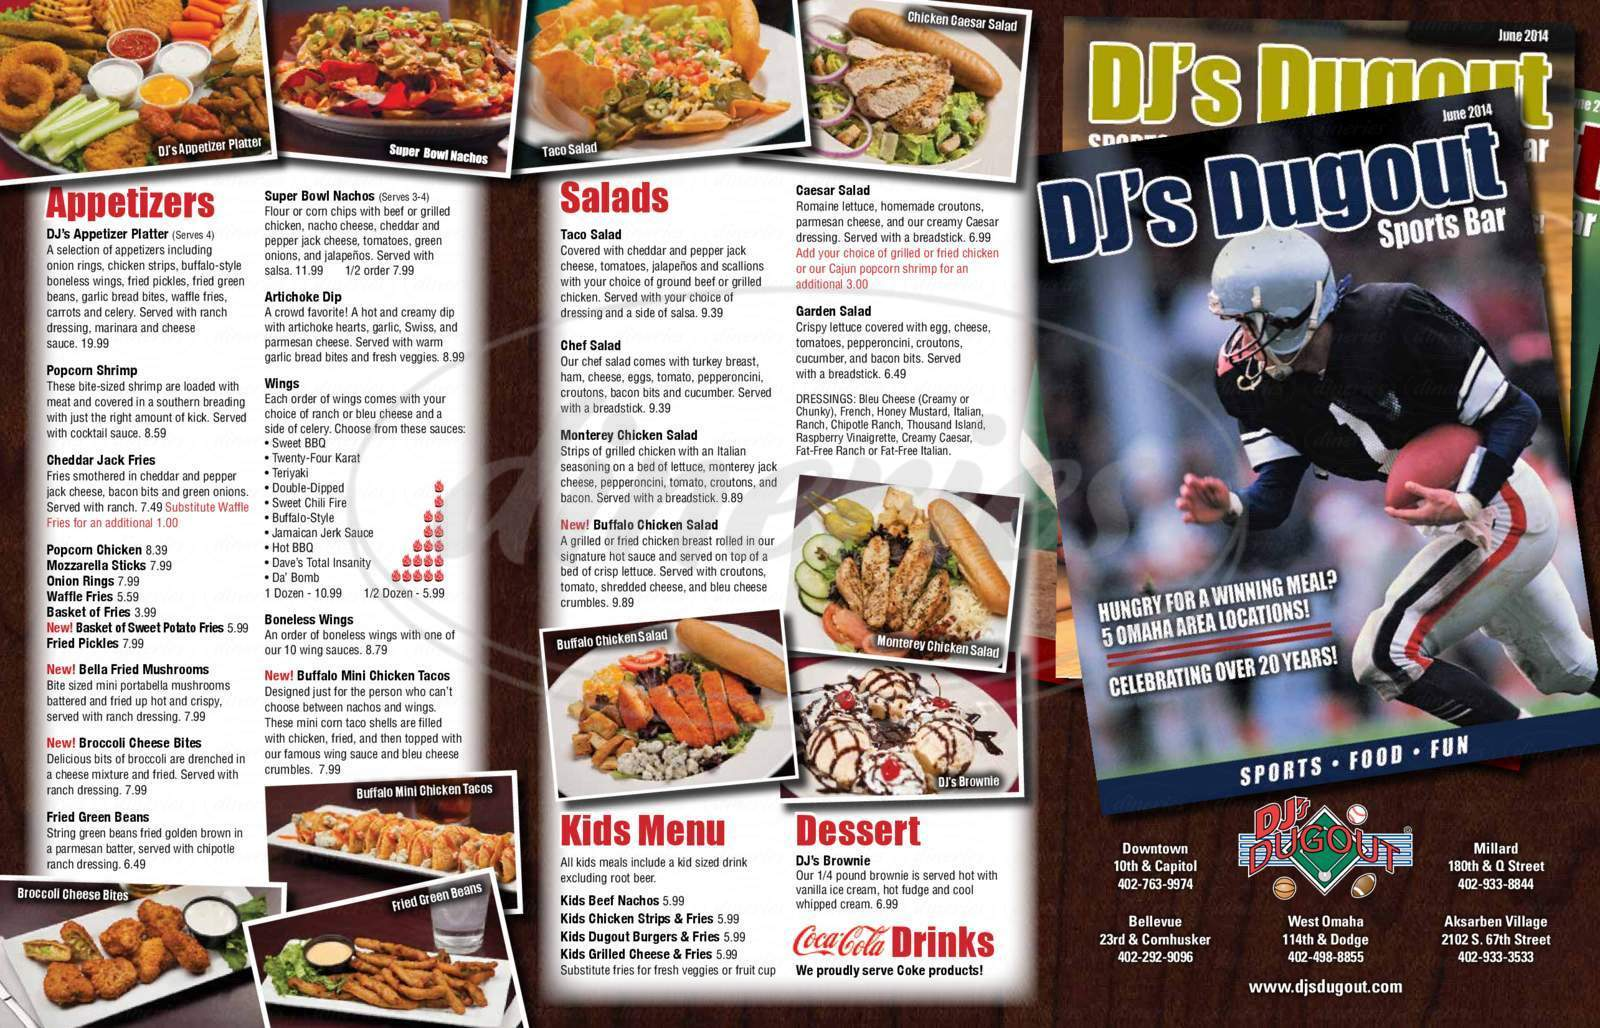 menu for Dj's Dugout